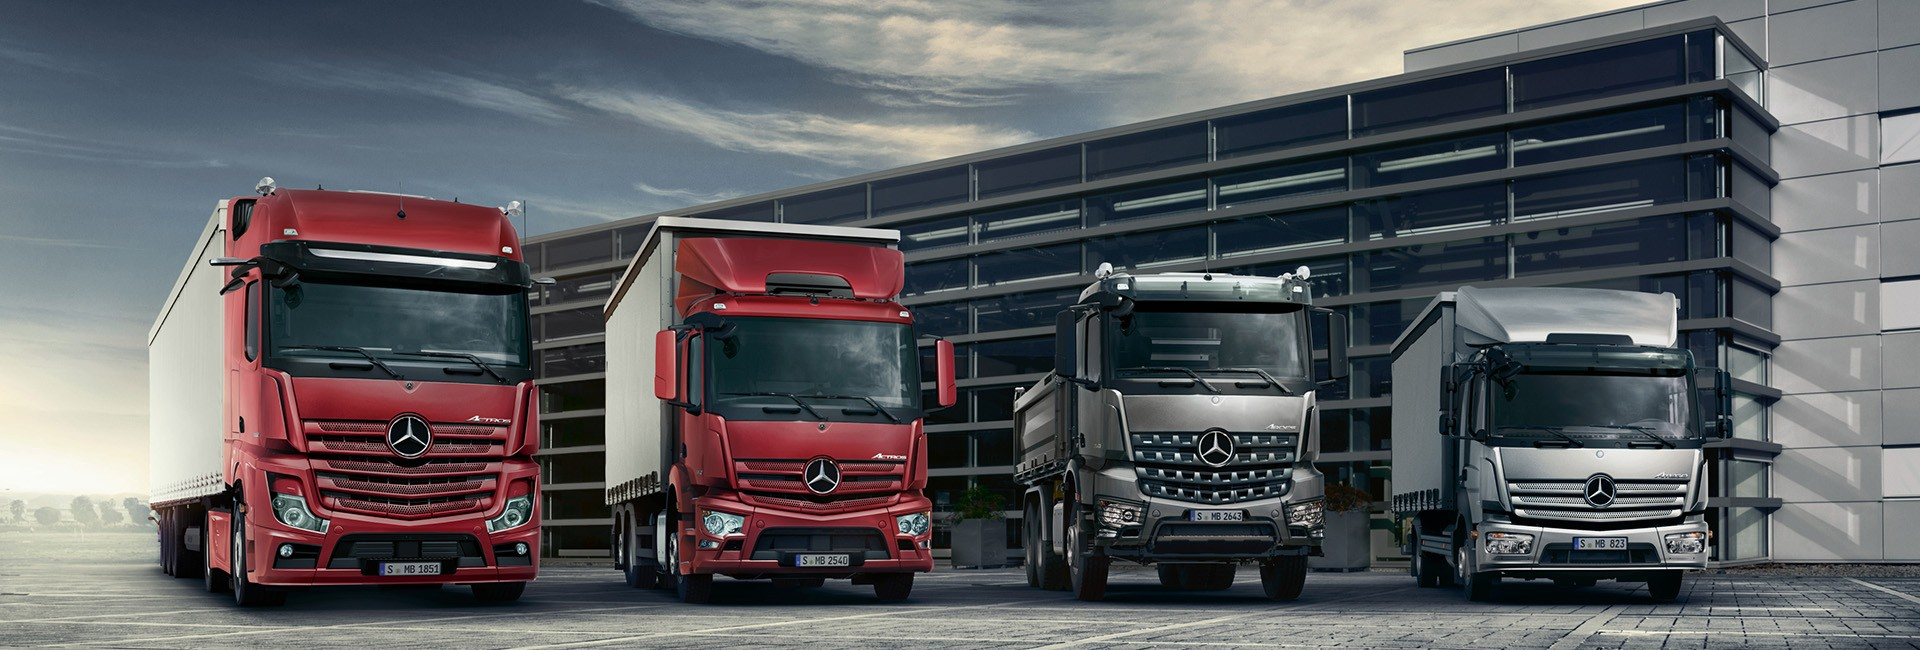 Camions neufs